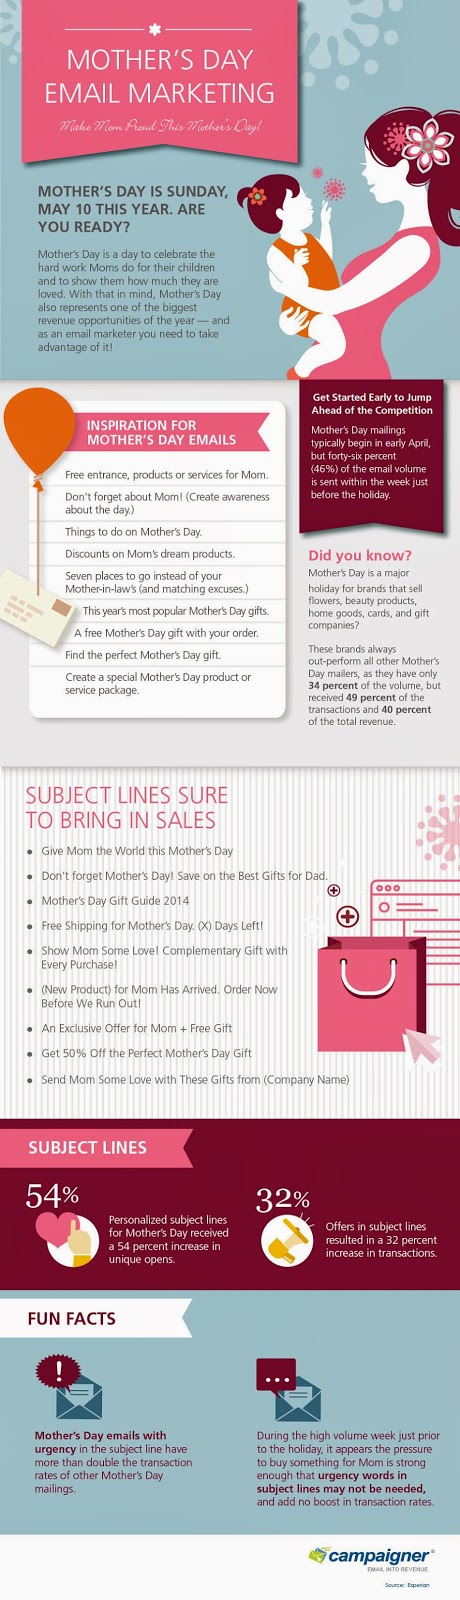 Mother's Day Email Marketing Tips